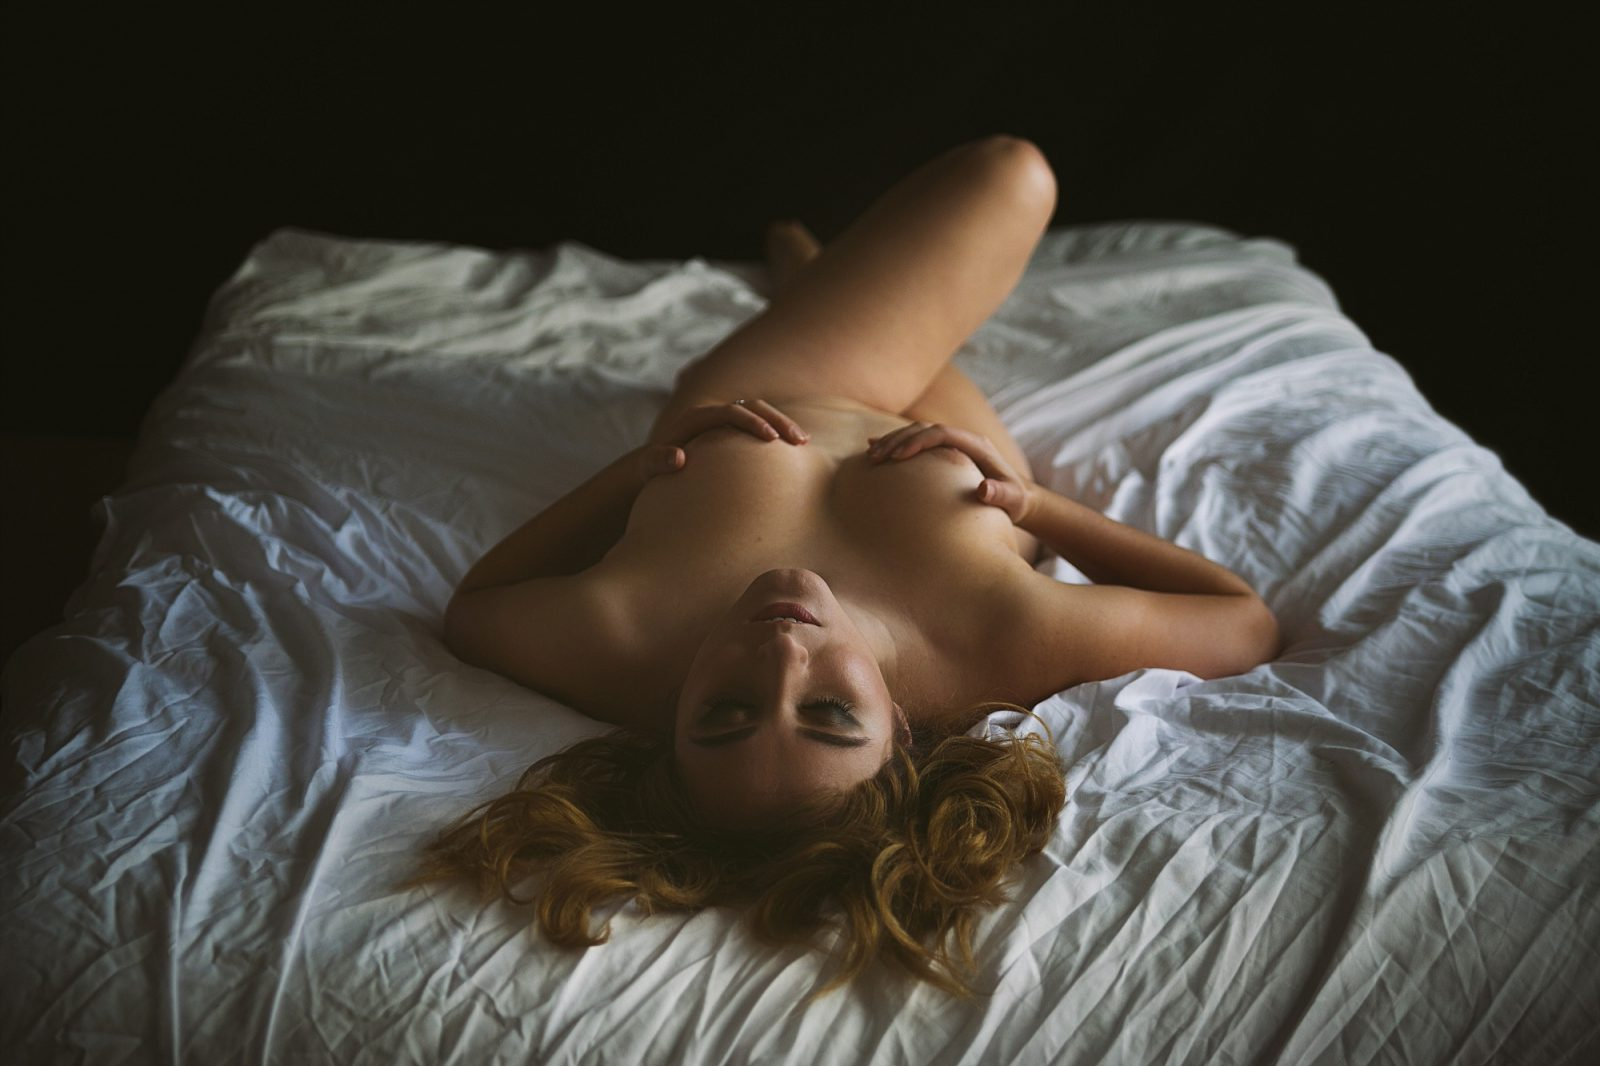 San-francisco-bay-area-boudoir-photography